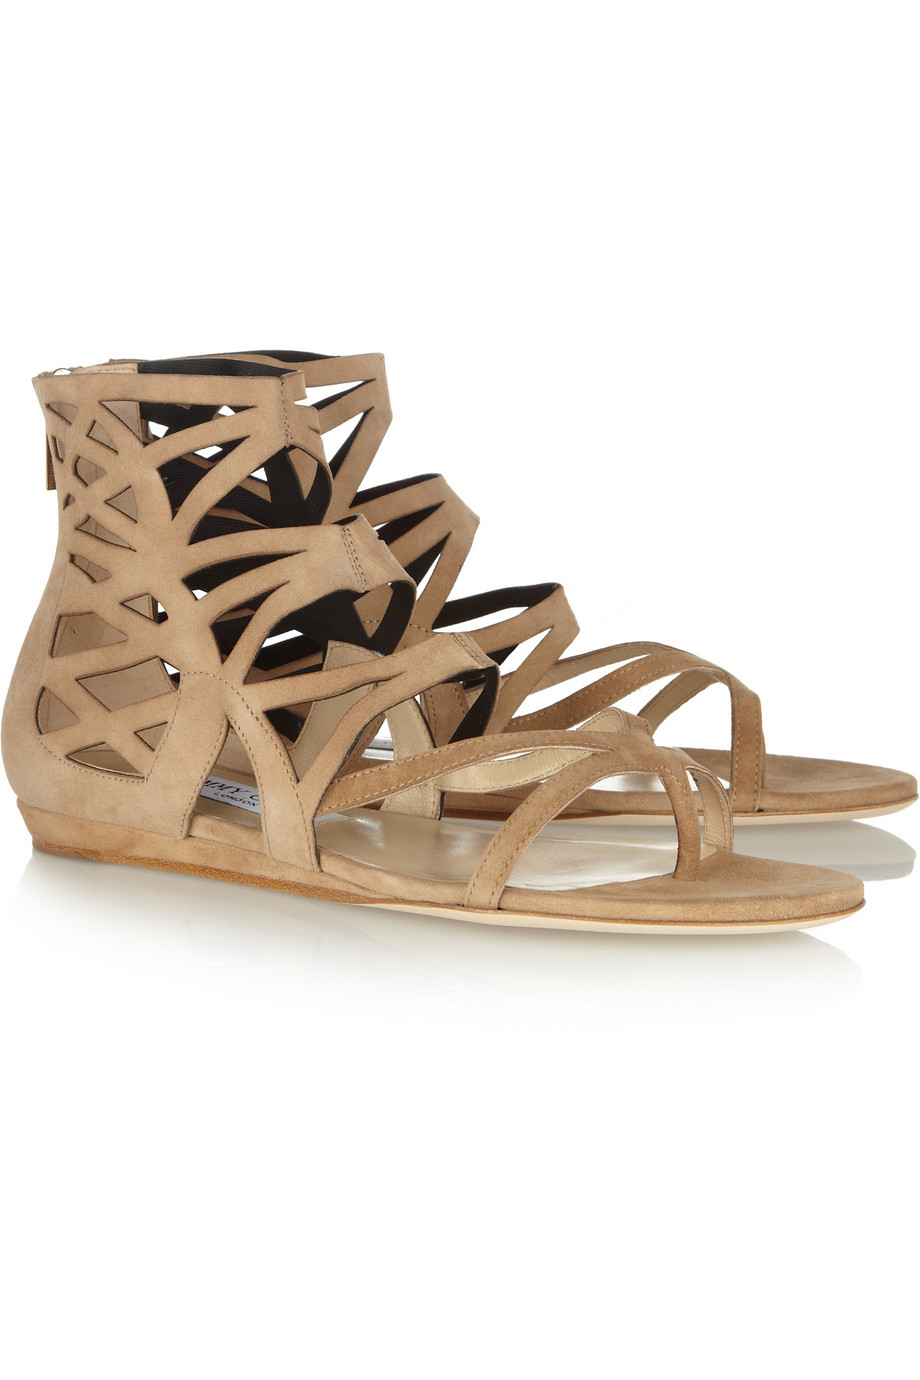 Jimmy Choo Suede Laser Cut Sandals sale visit clearance wiki ptD0hh